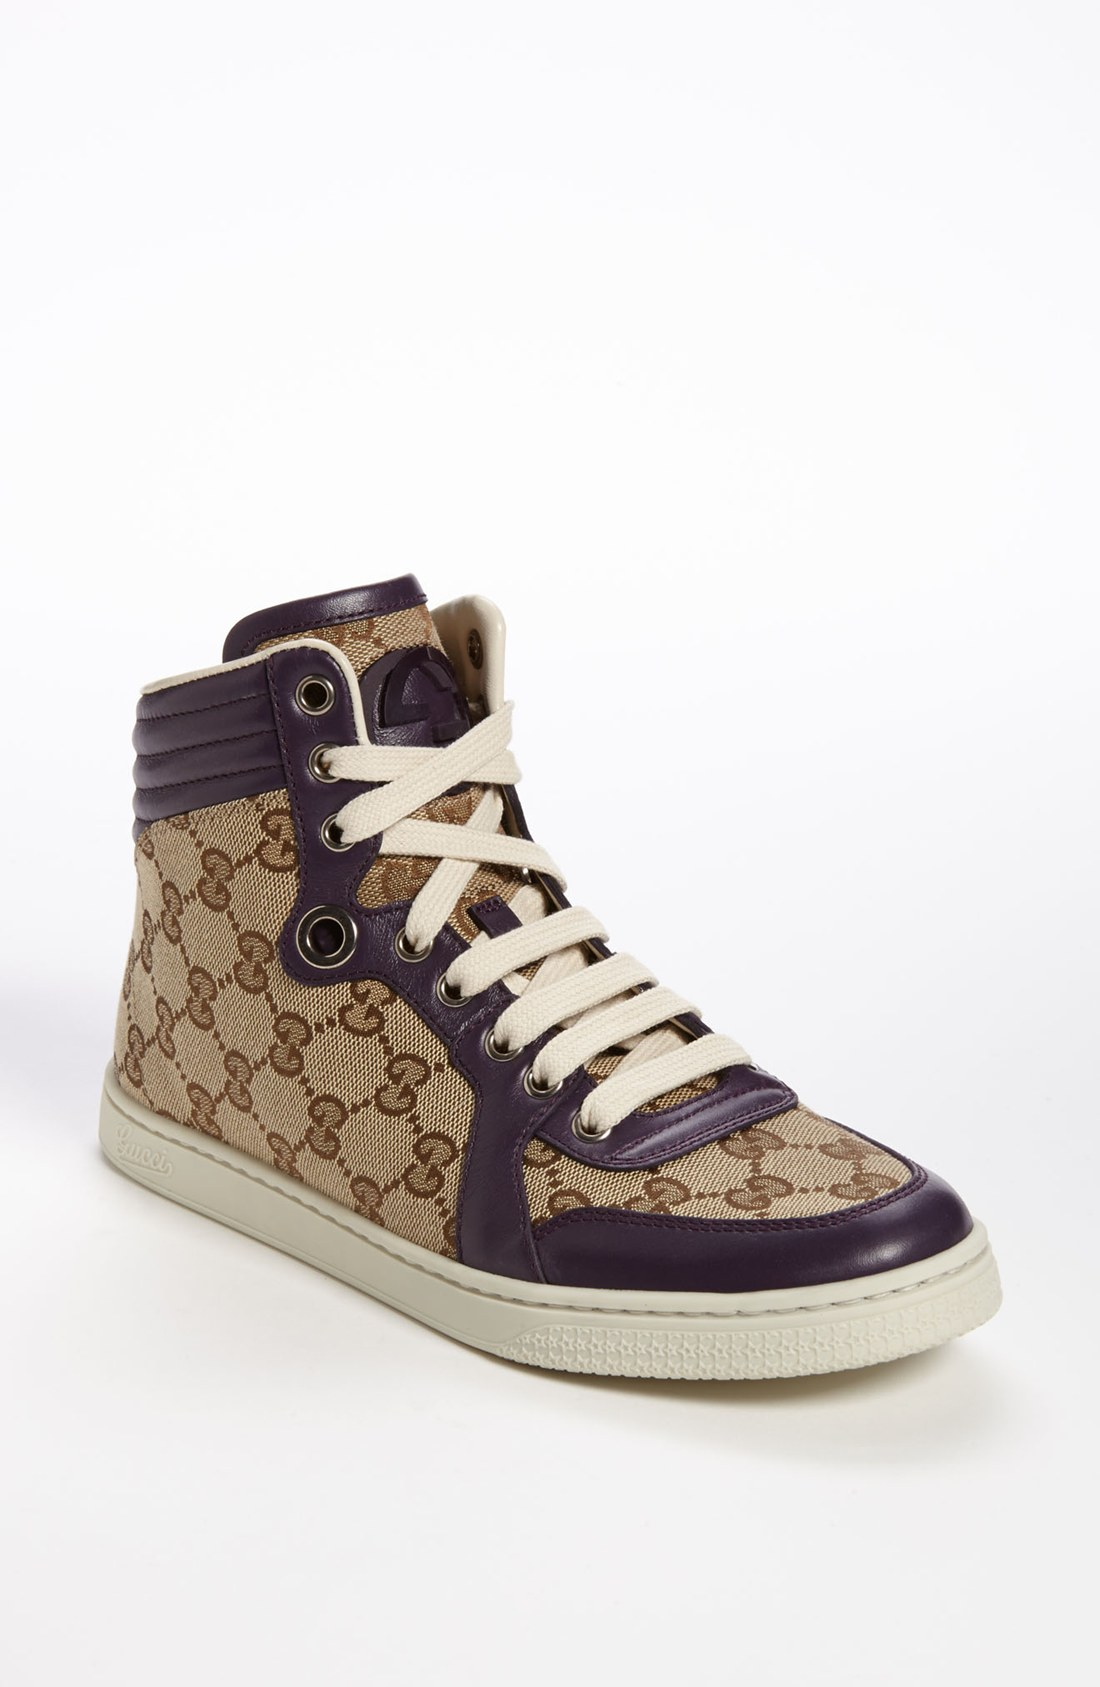 gucci coda high top sneaker in brown beige lyst. Black Bedroom Furniture Sets. Home Design Ideas